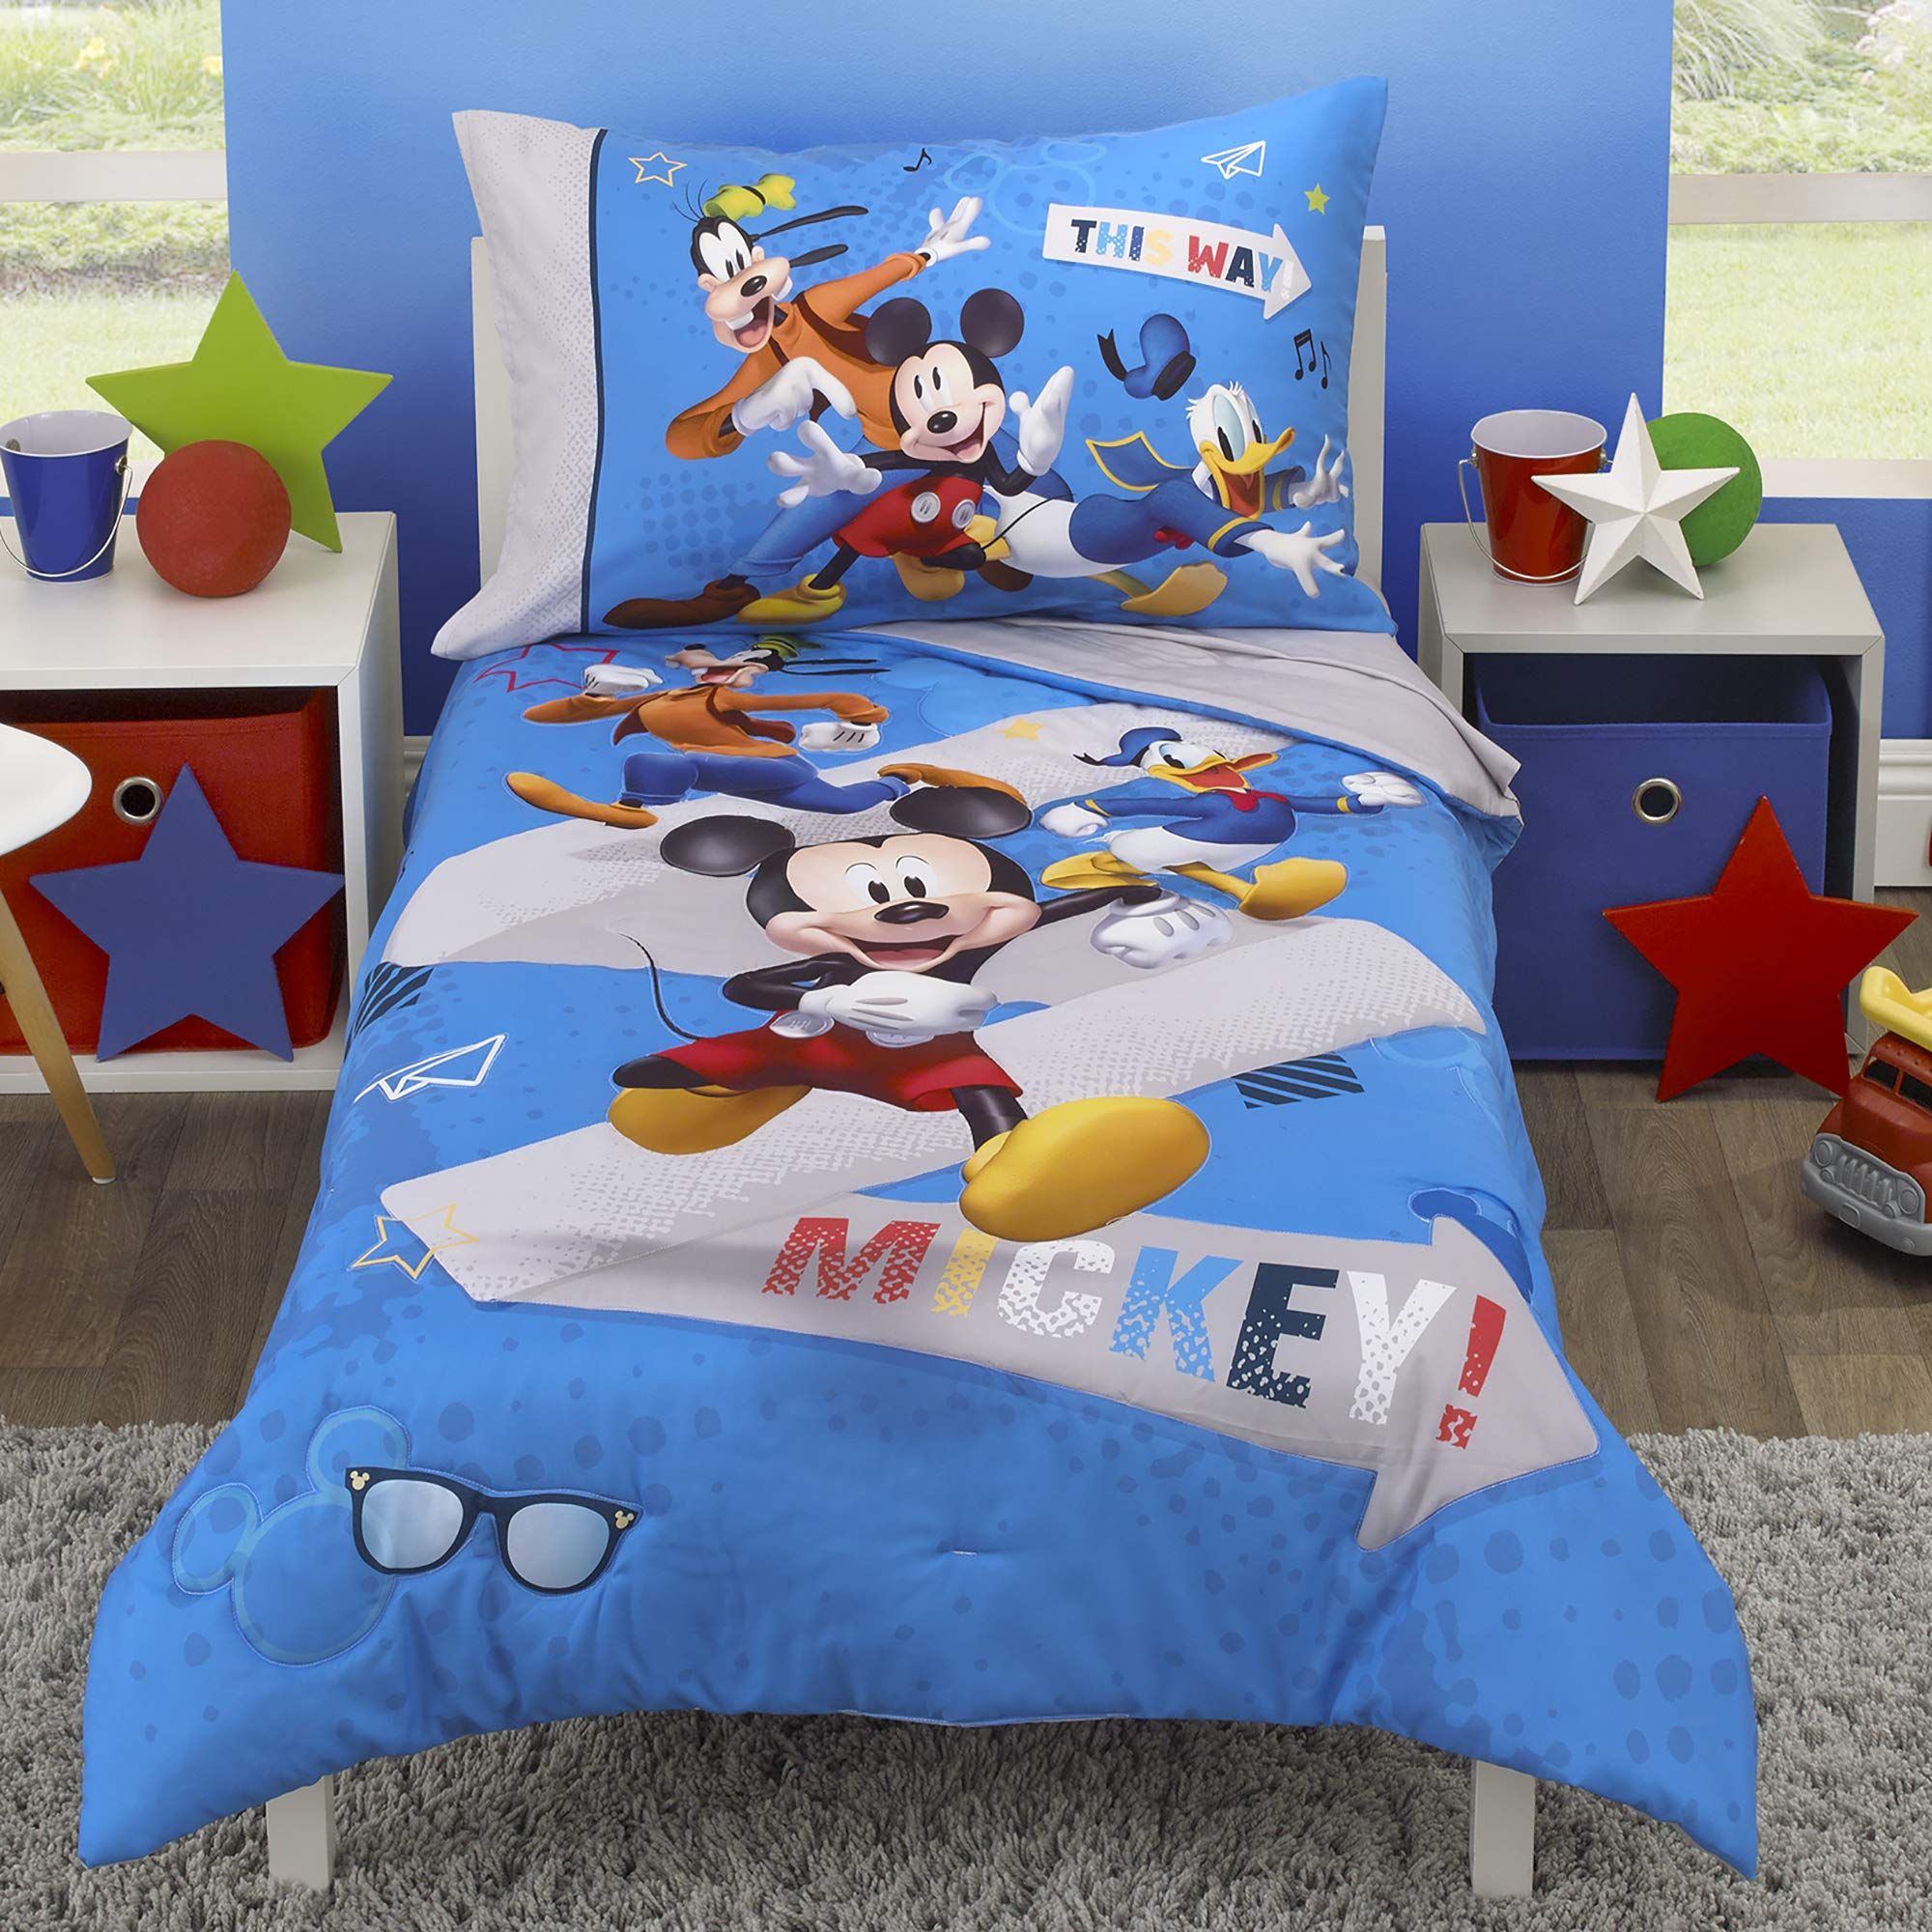 Disney Mickey Mouse and Pals 4 Piece Toddler Bedding Set - Fitted Sheet, Pillow Case, Top Sheet, and Comforter Quilt - Blue